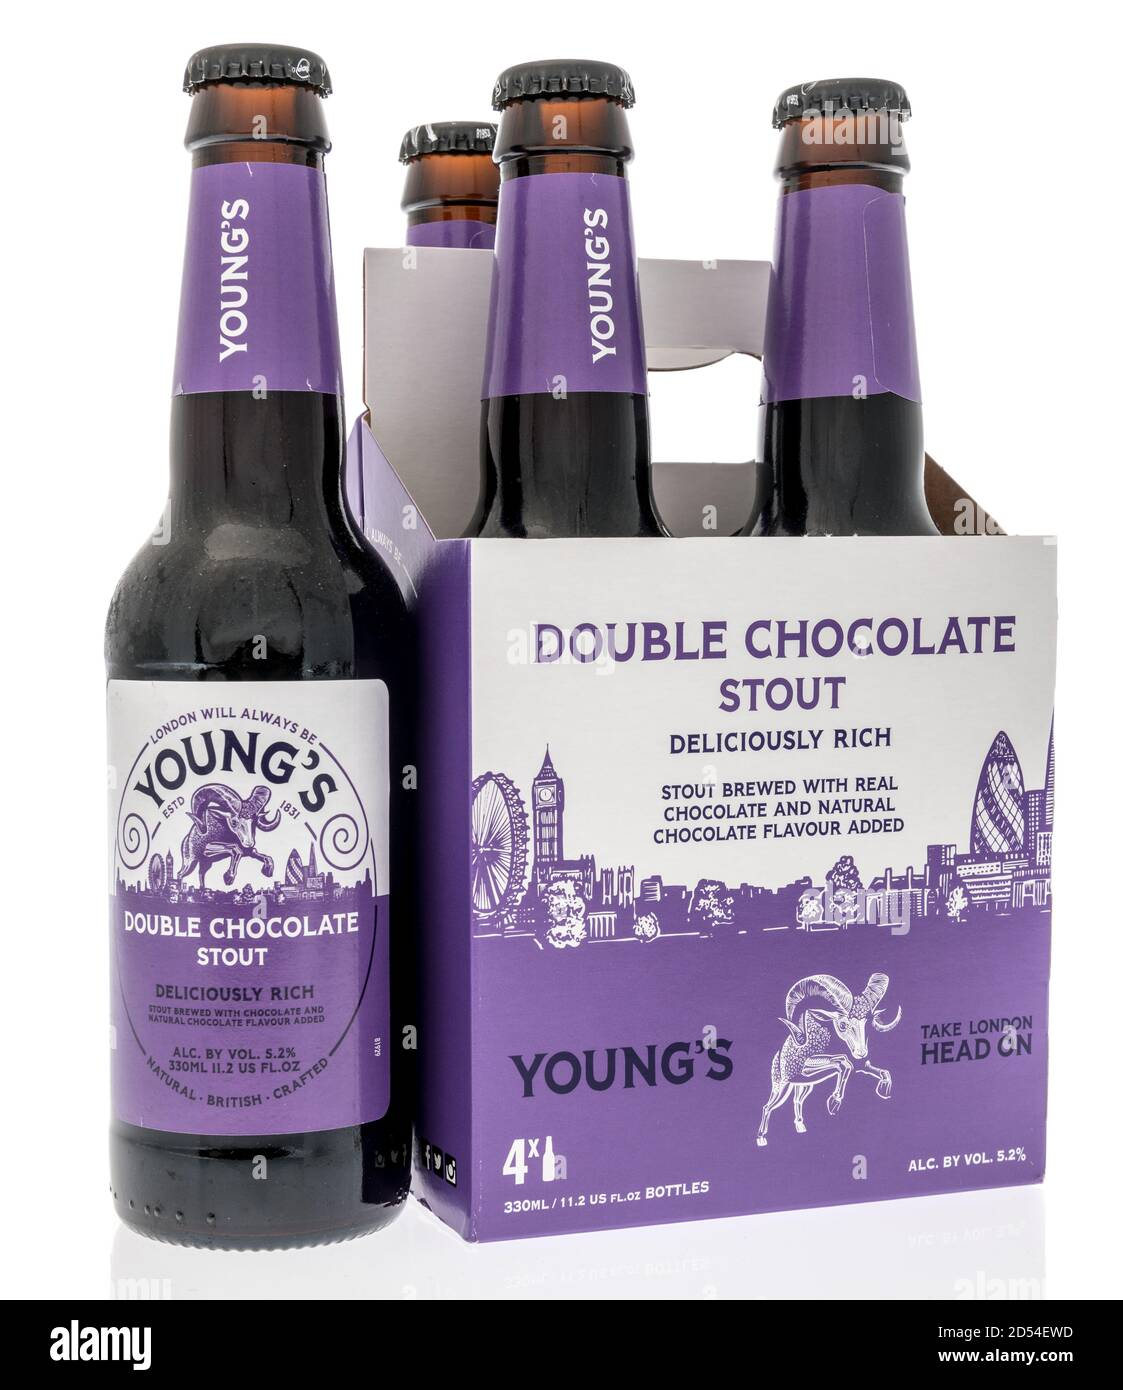 Winneconne, WI - 6 October 2020:  A four pack of Double chocolate stout beer on an isolated background. Stock Photo